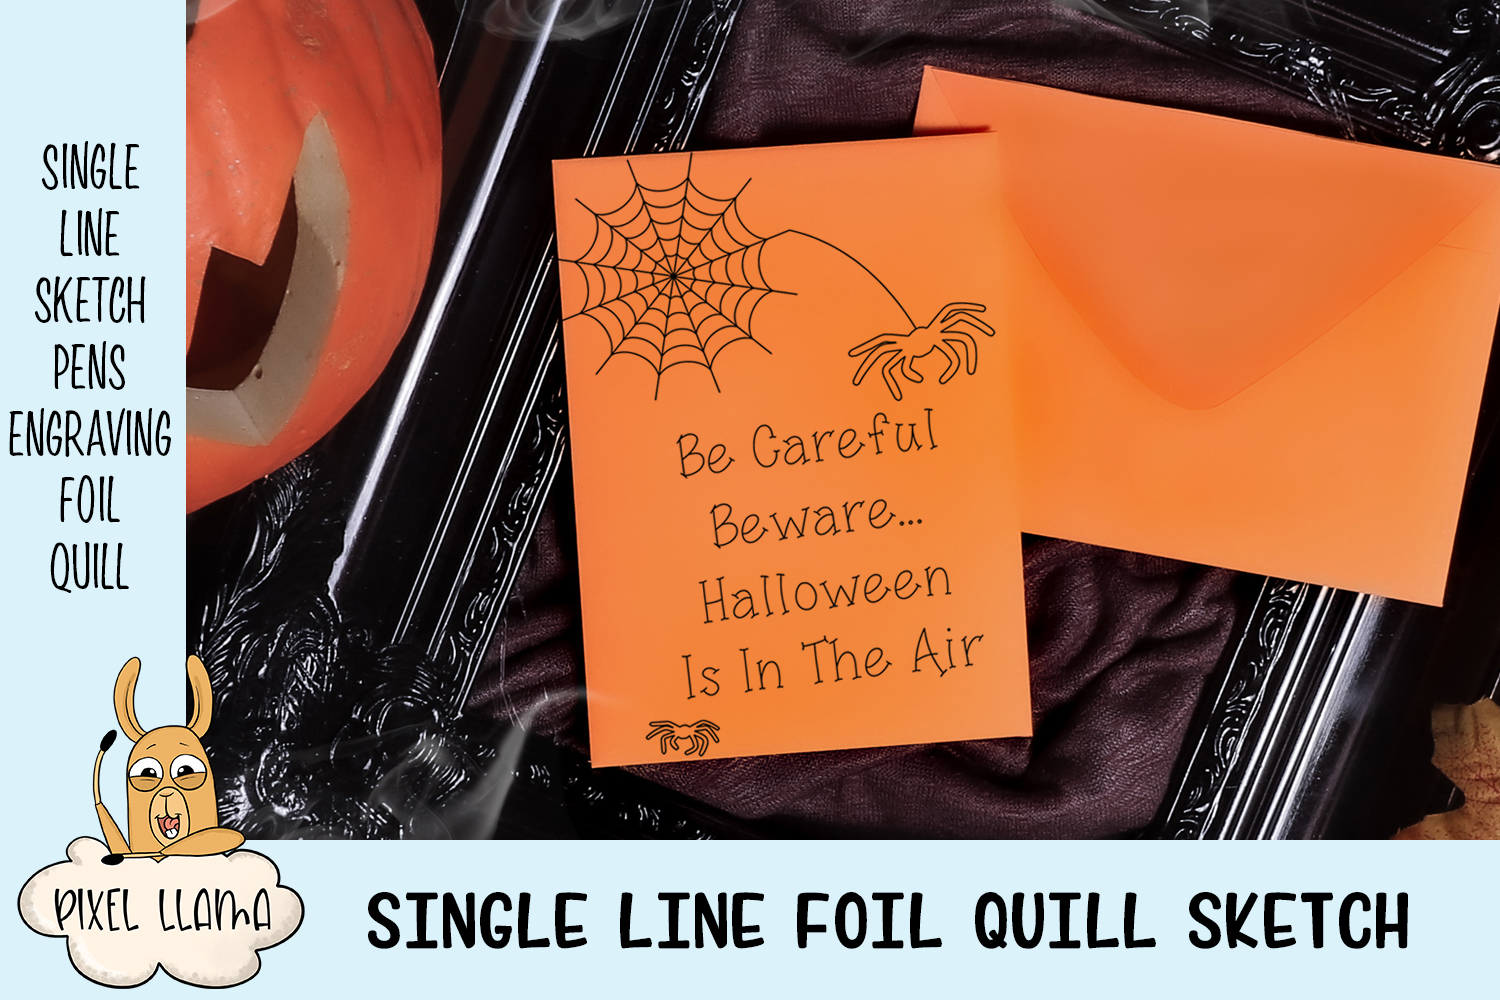 Be Careful Beware Halloween Single Line Sketch Foil Quill example image 2